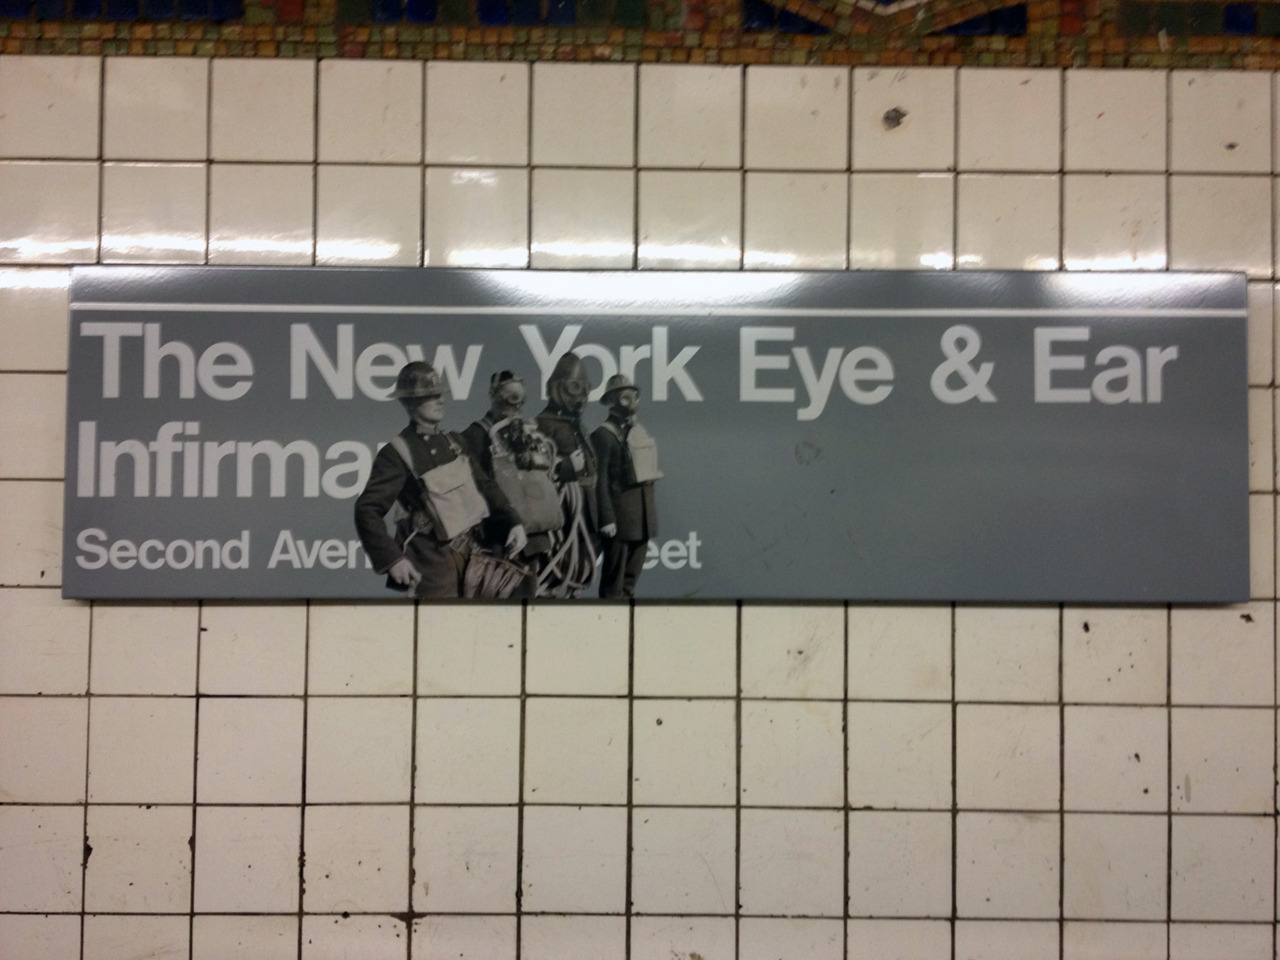 Nice paste-up at 1st ave. and 14th st. on the Brooklyn side of the L train.